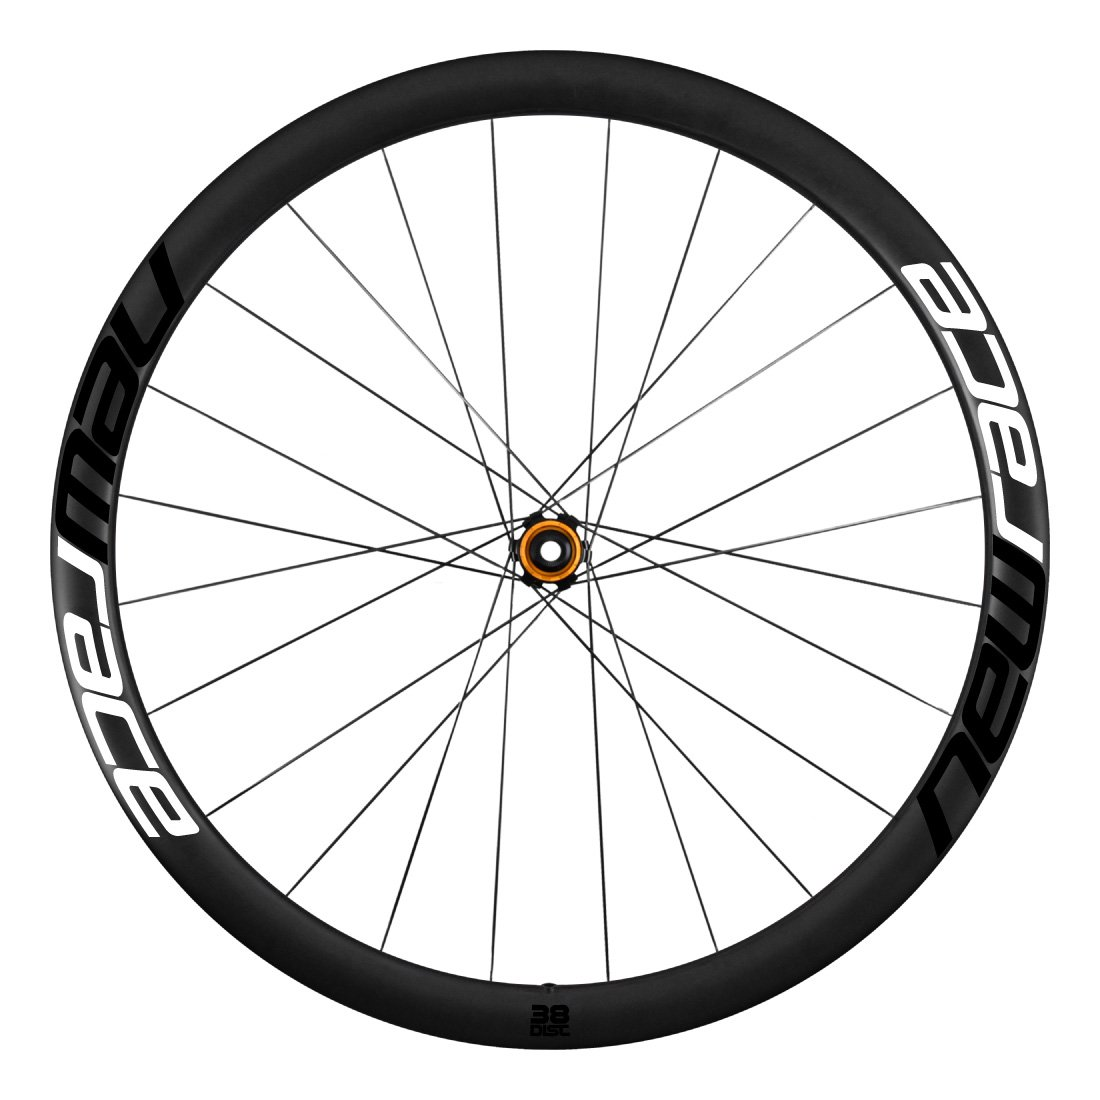 New Race Road Carbon 38 Clincher Disc Wheelset Shimano (Par de Ruedas Carretera Carbono): Amazon.es: Deportes y aire libre